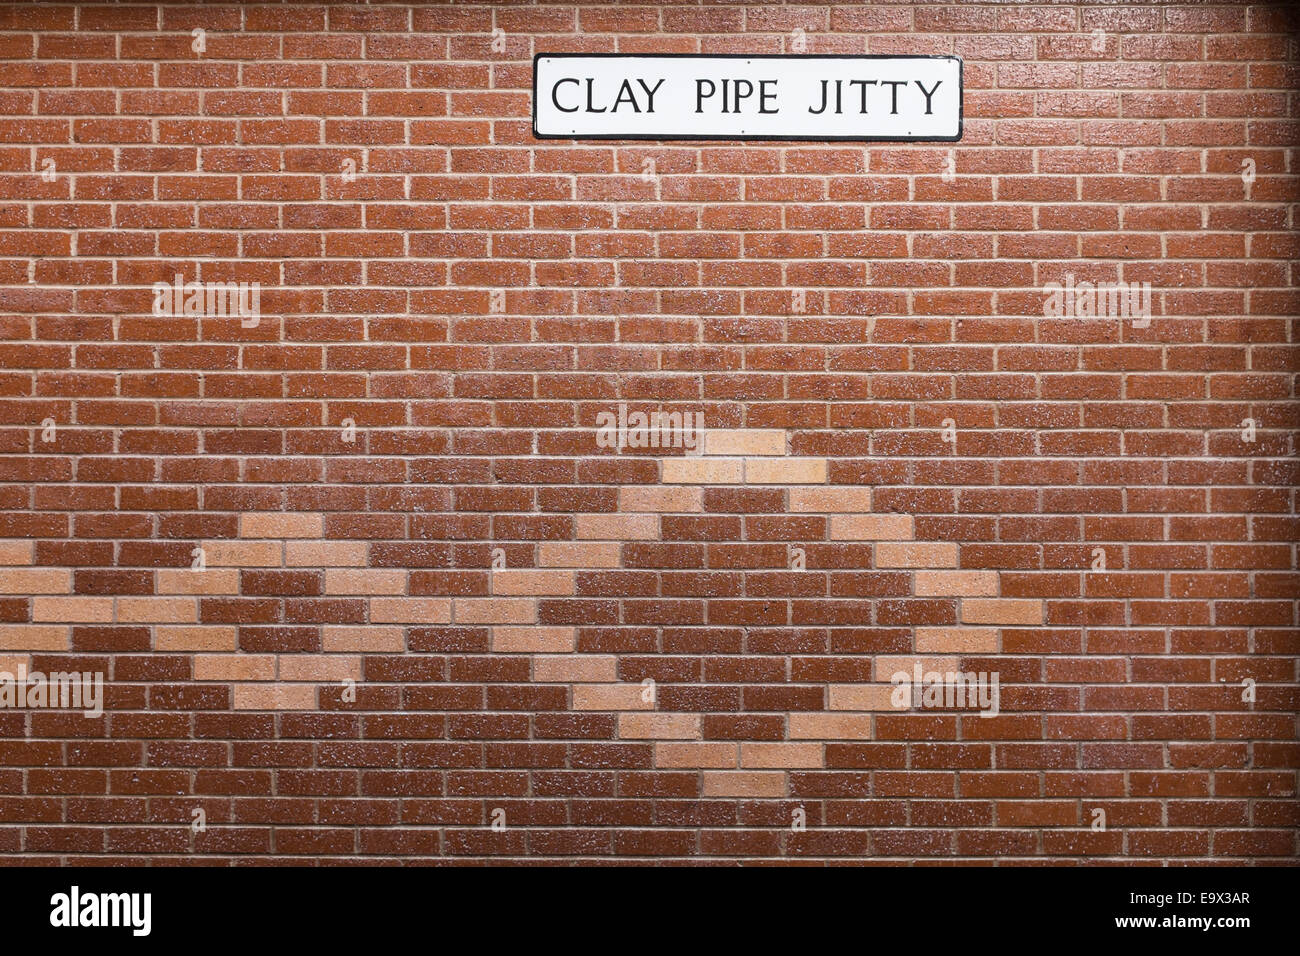 Elegant Brick Wall With Decorative Brick Patterned Inserts And A Strange Street  Name Sign U0027clay Pipe Jittyu0027